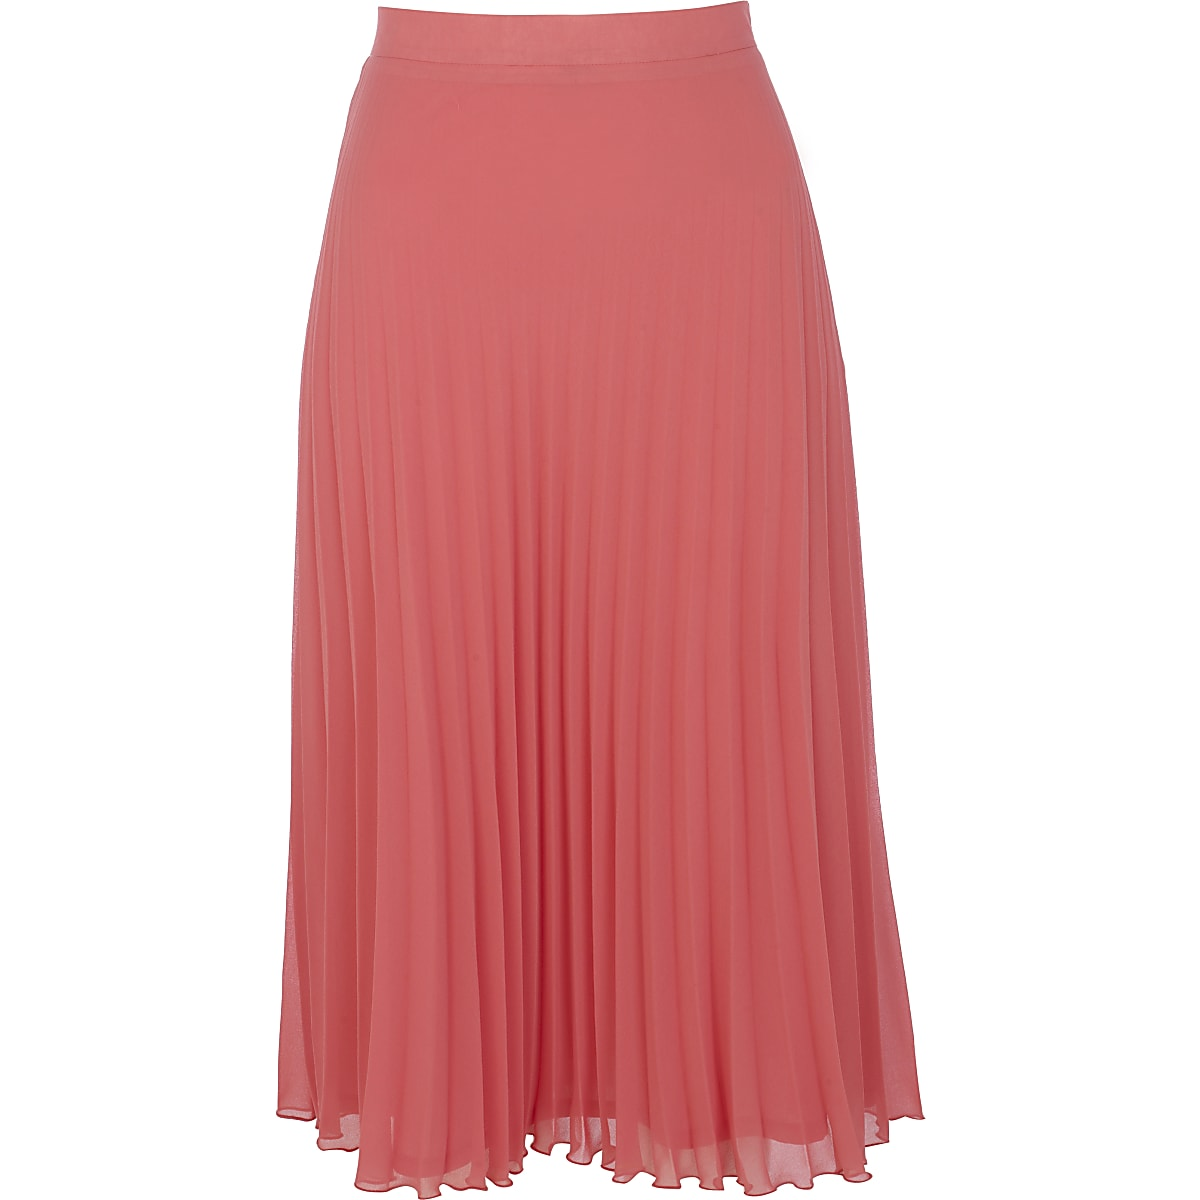 Bright coral pleated skirt